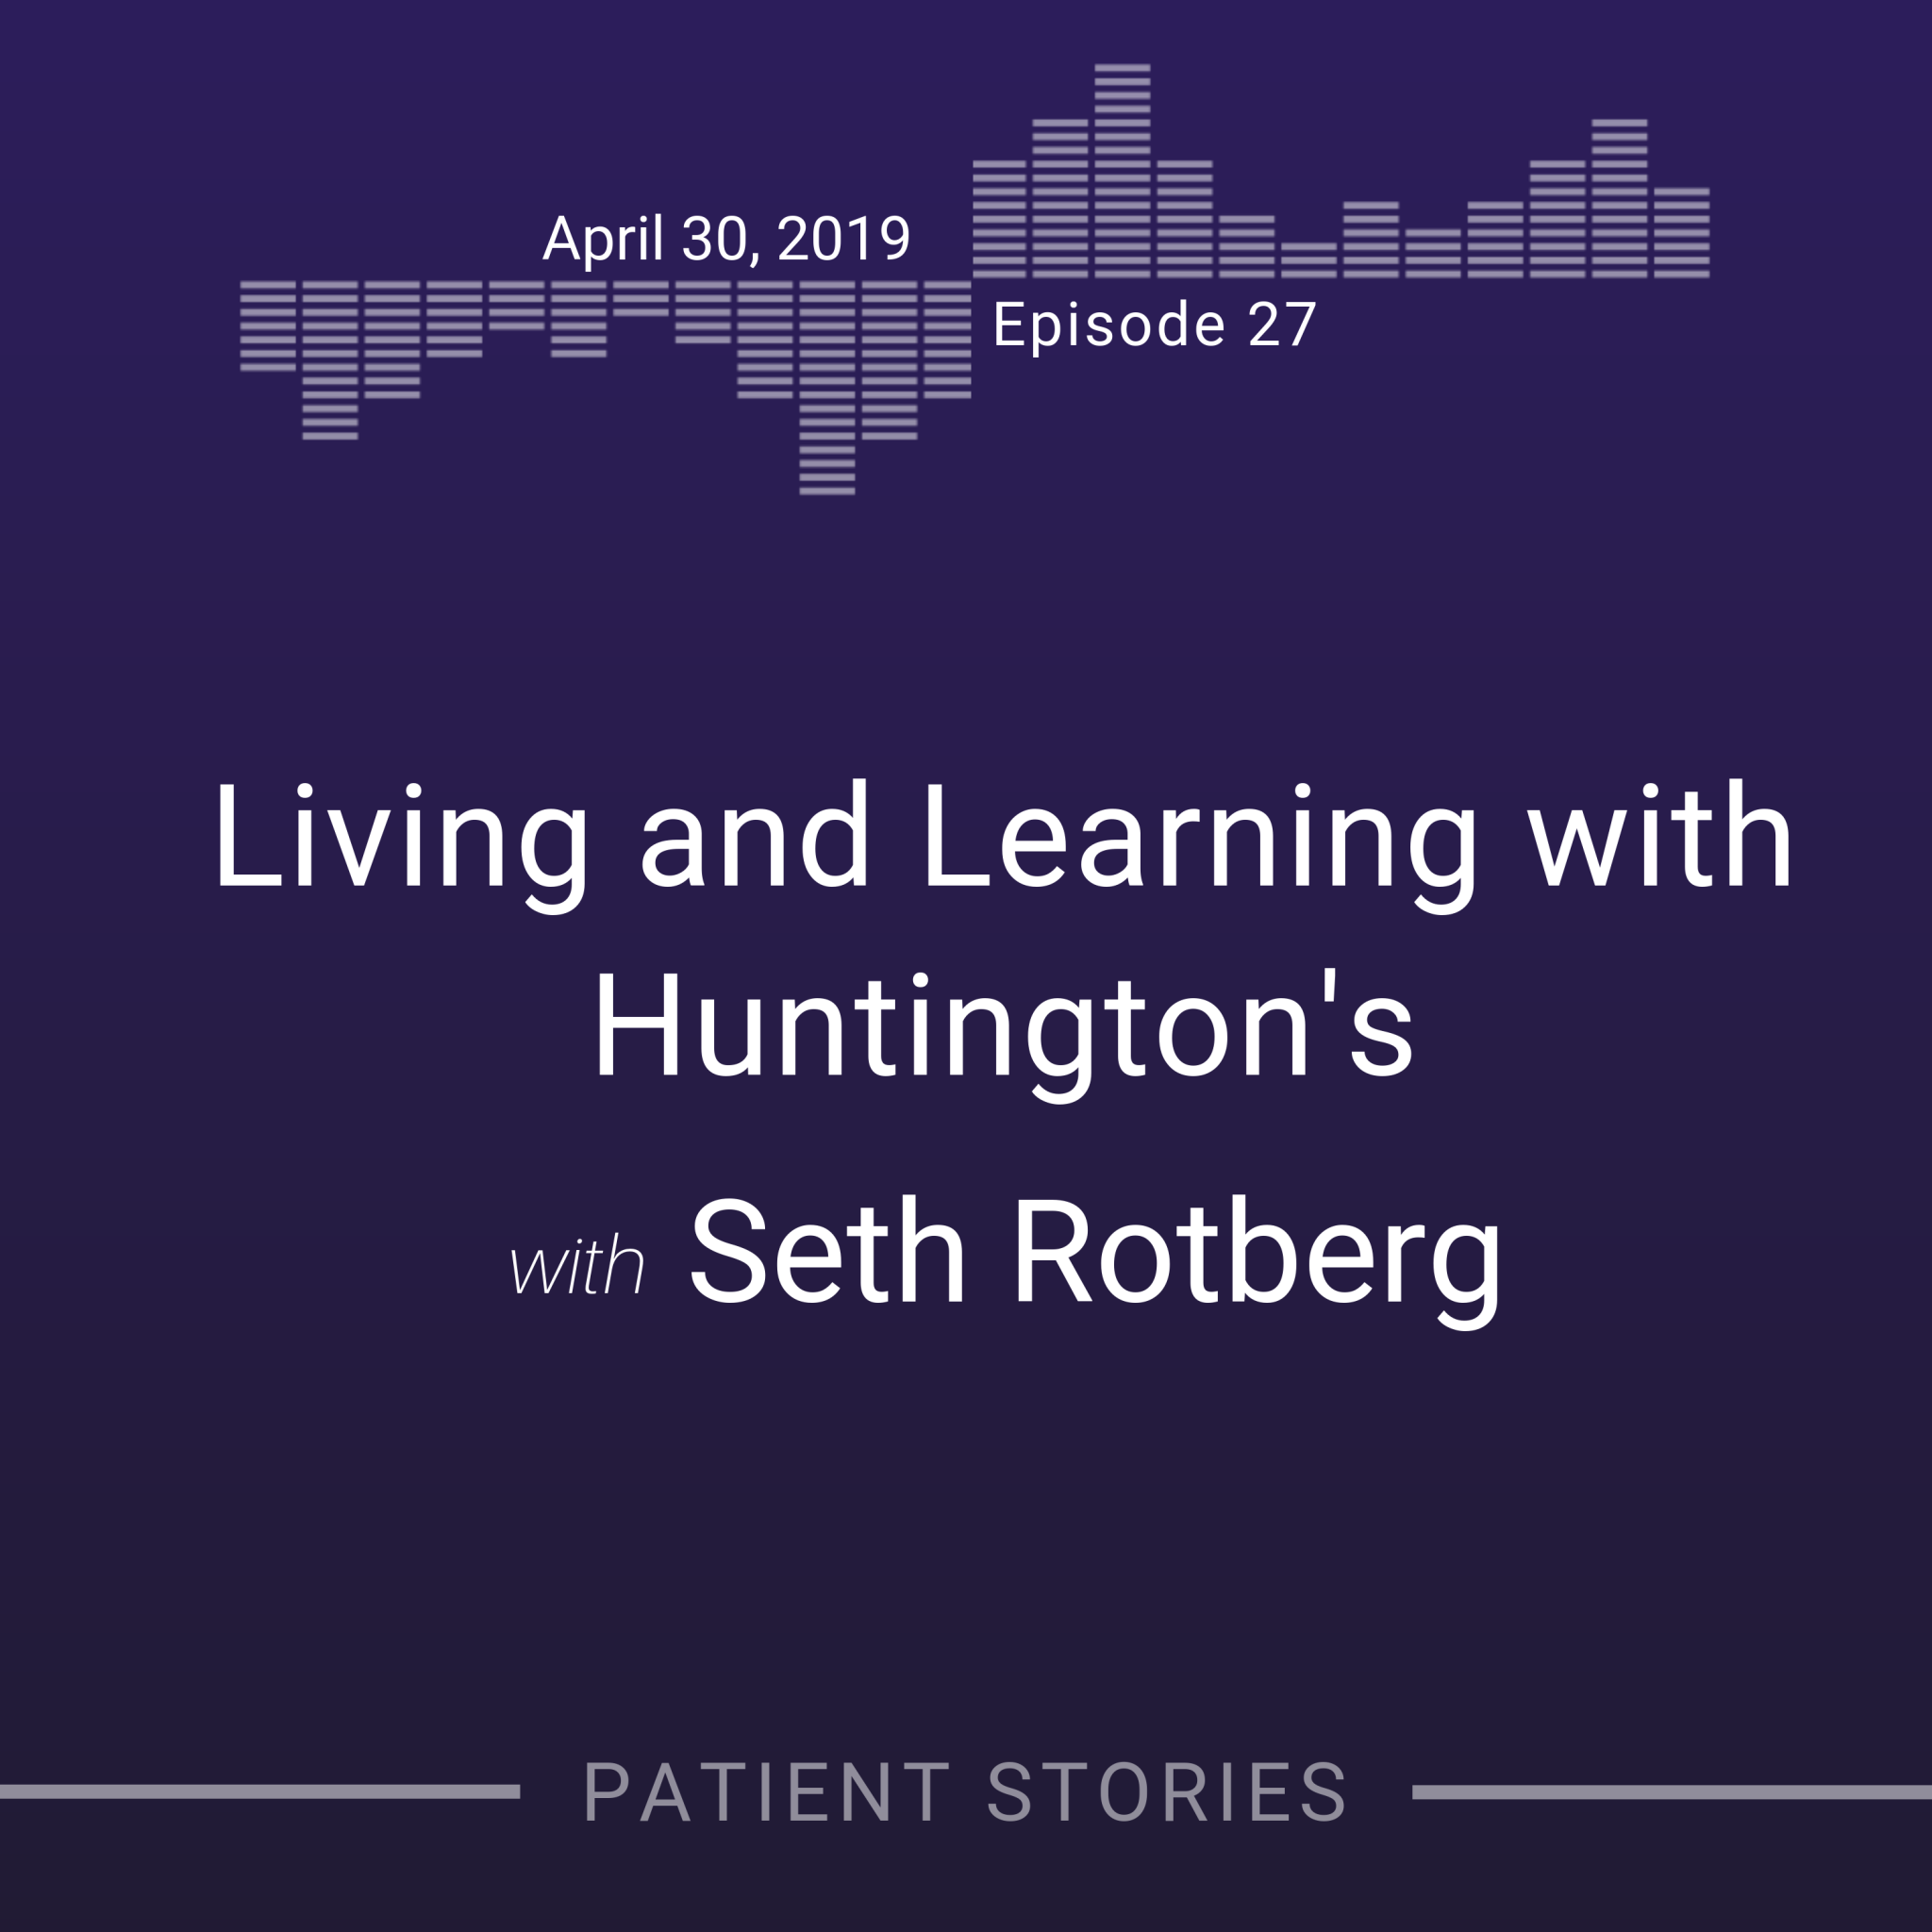 Grey Genetics Patient Stories Podcast: Living and Learning with Huntington's Disease with Seth Rotberg